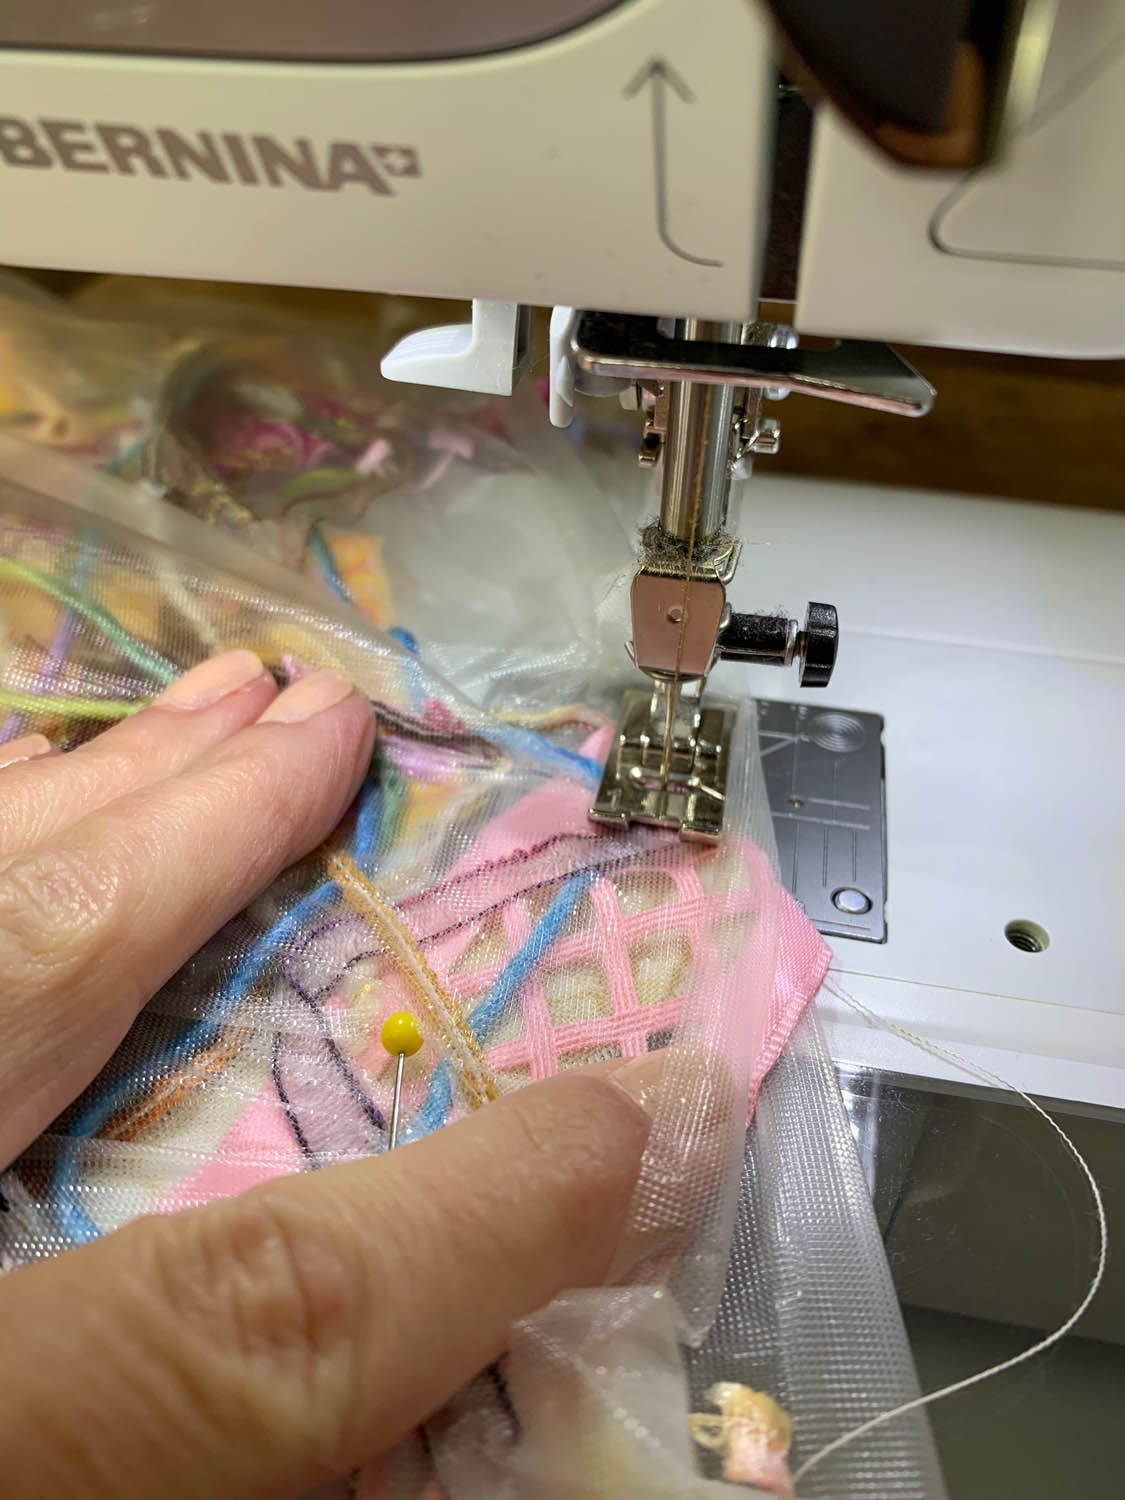 sewing machine thread-quilting the sandwiched layers of fiber bits and Sulky Solvy water soluble stabilizer